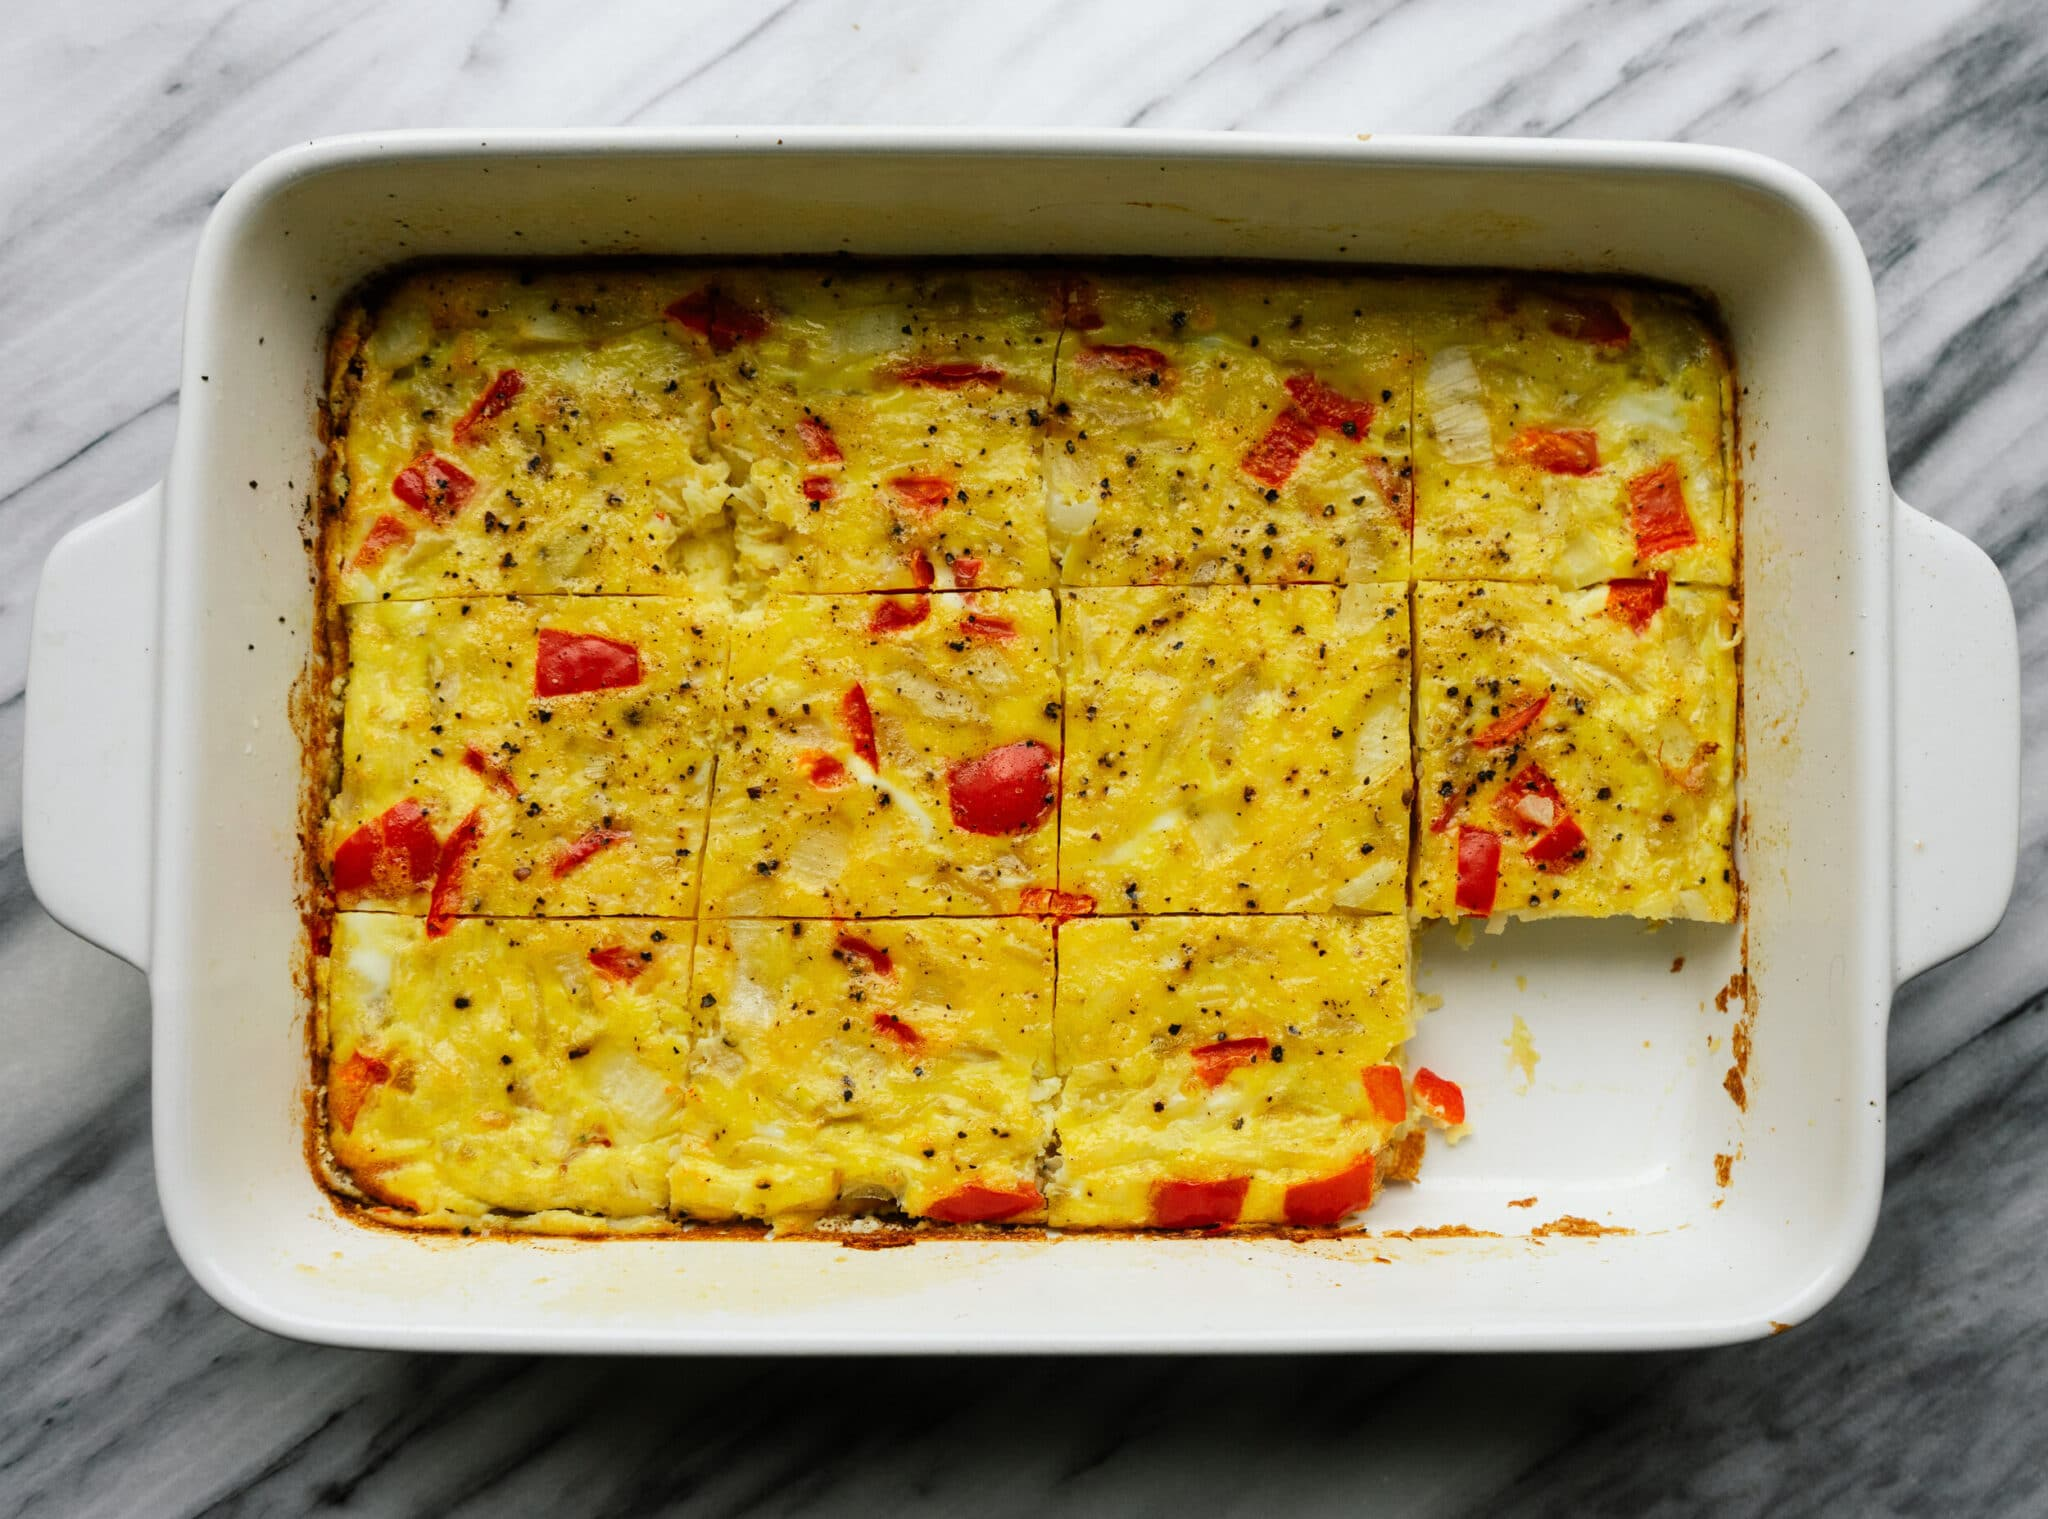 Above view of breakfast casserole with hashbrowns in a baking dish